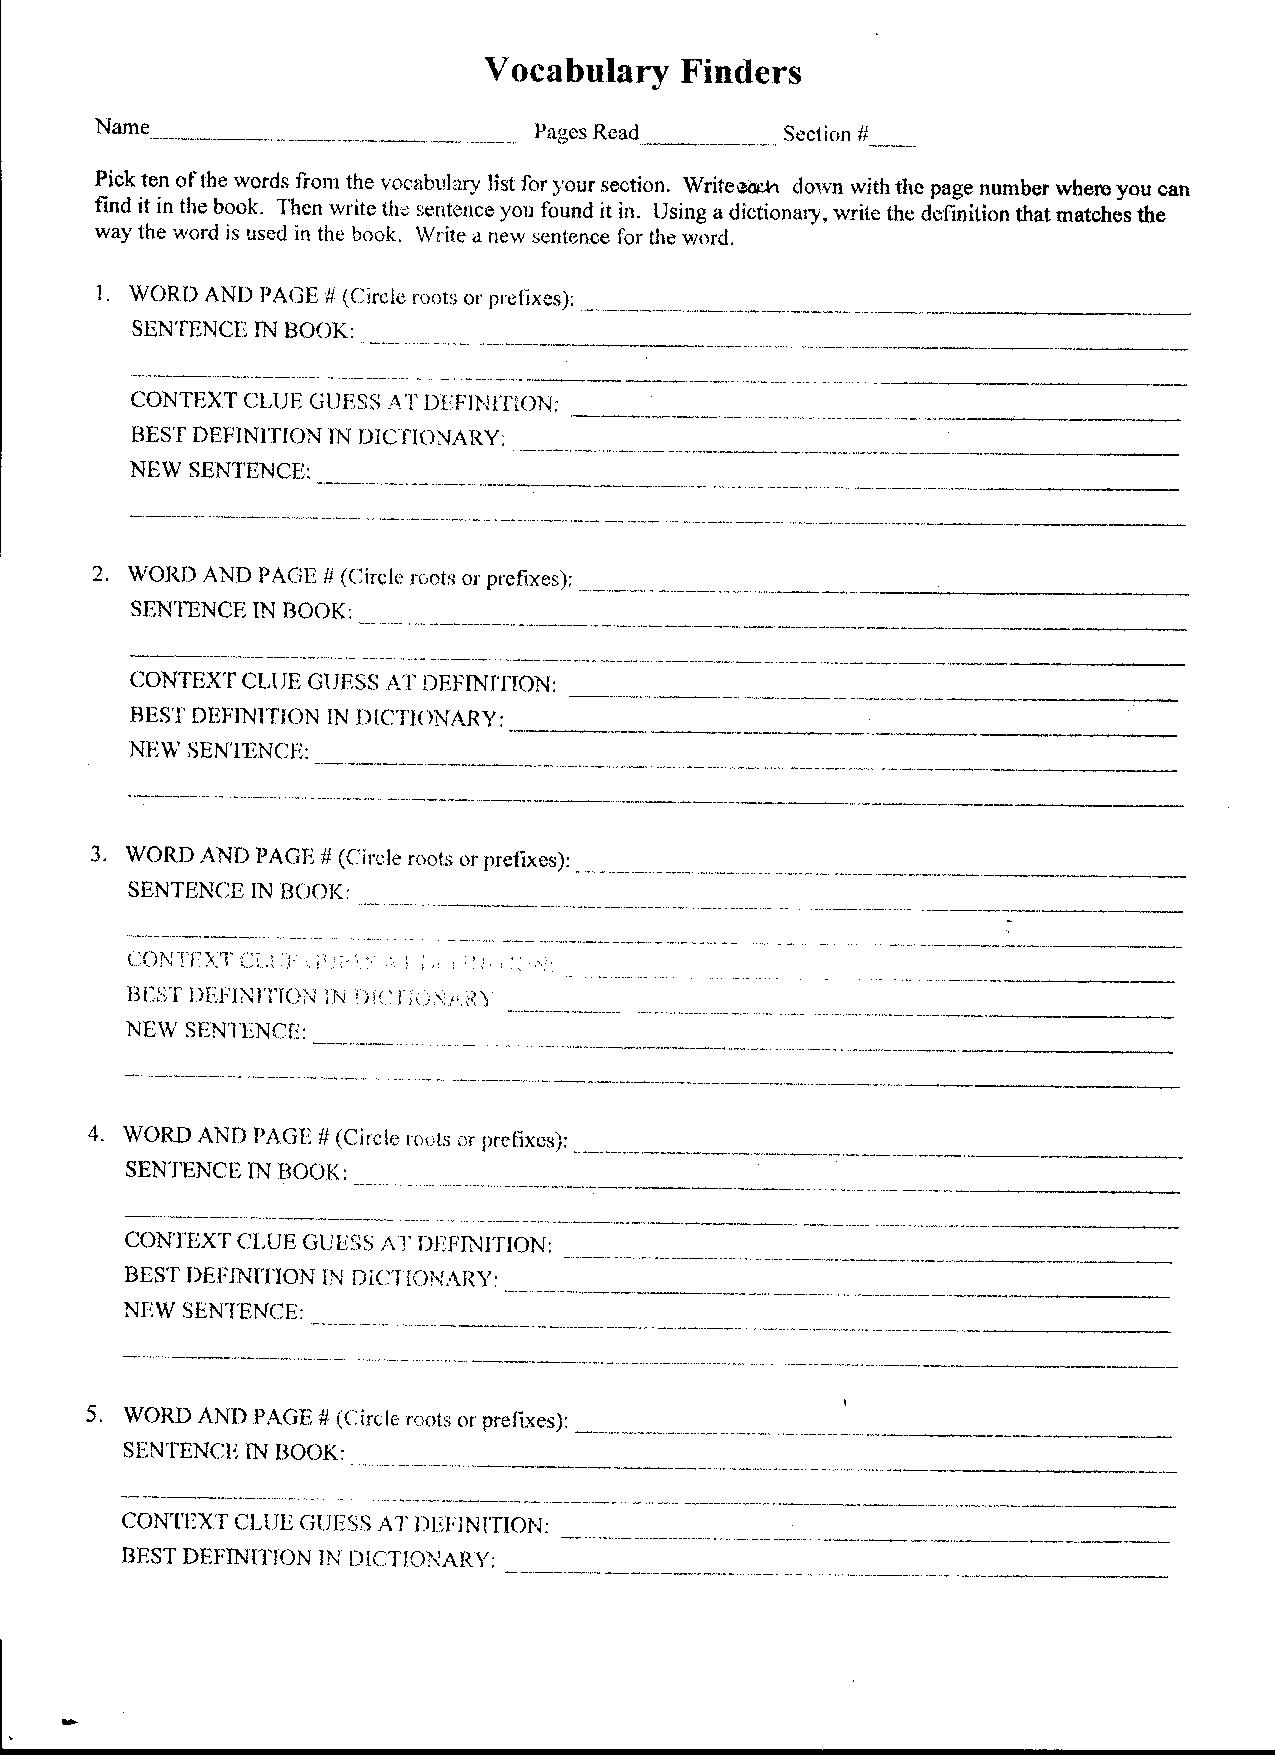 The Giver Vocabulary Worksheets Answers The Best Worksheets Image